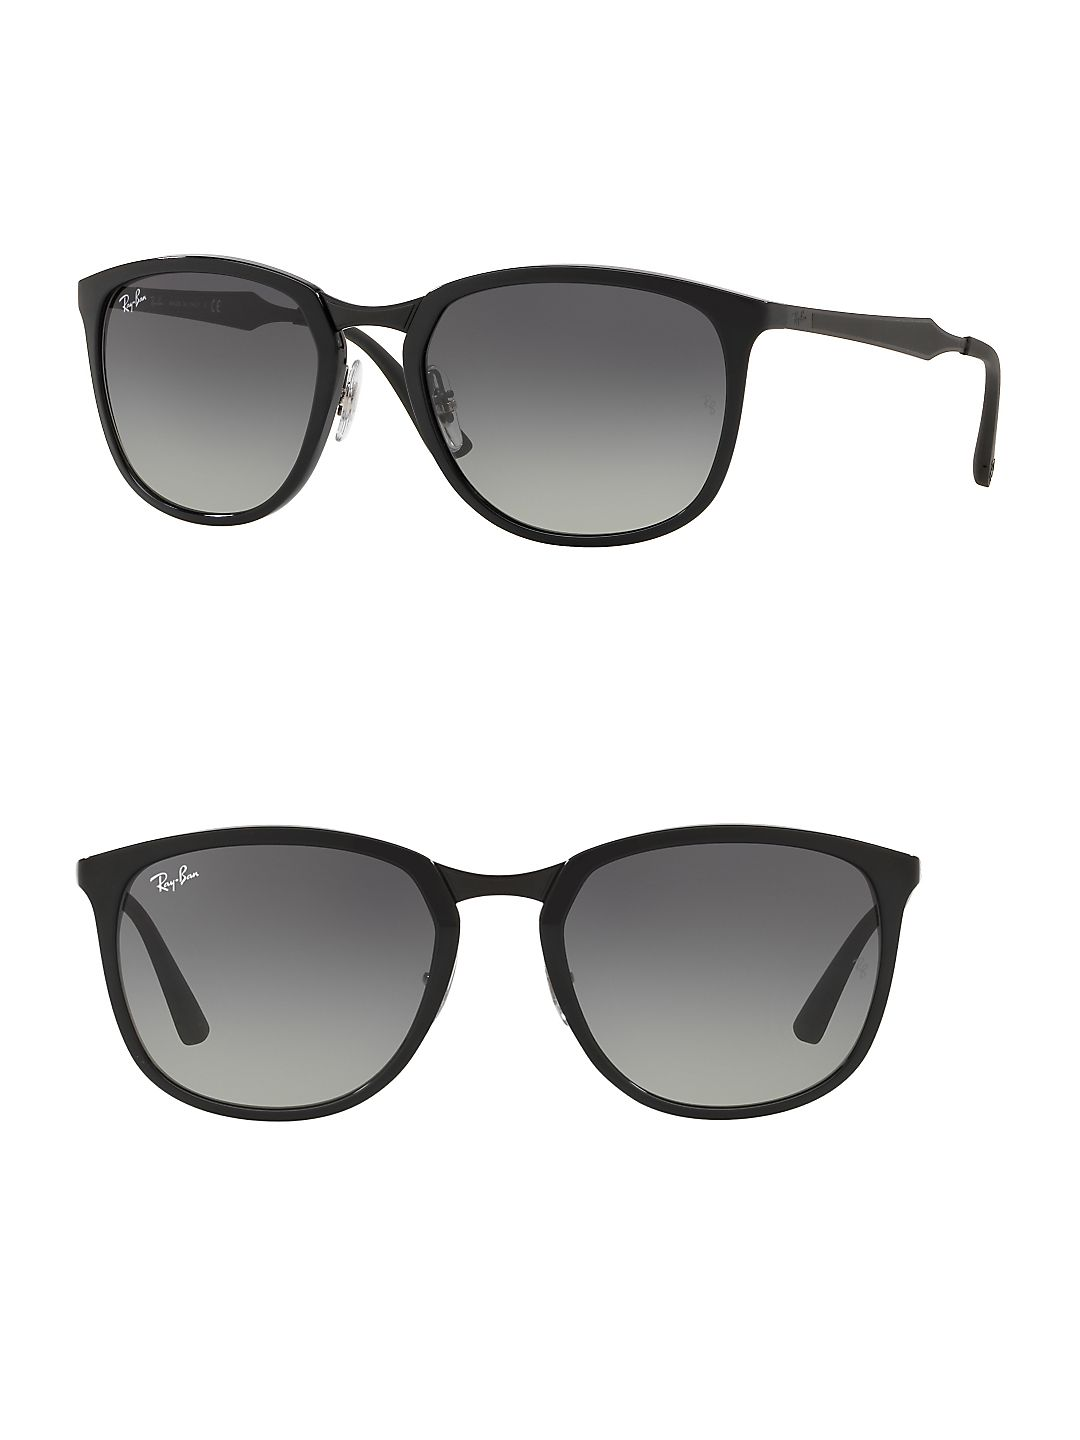 Ray-Ban Unisex RB4299 Rounded Square Sunglasses, 56mm